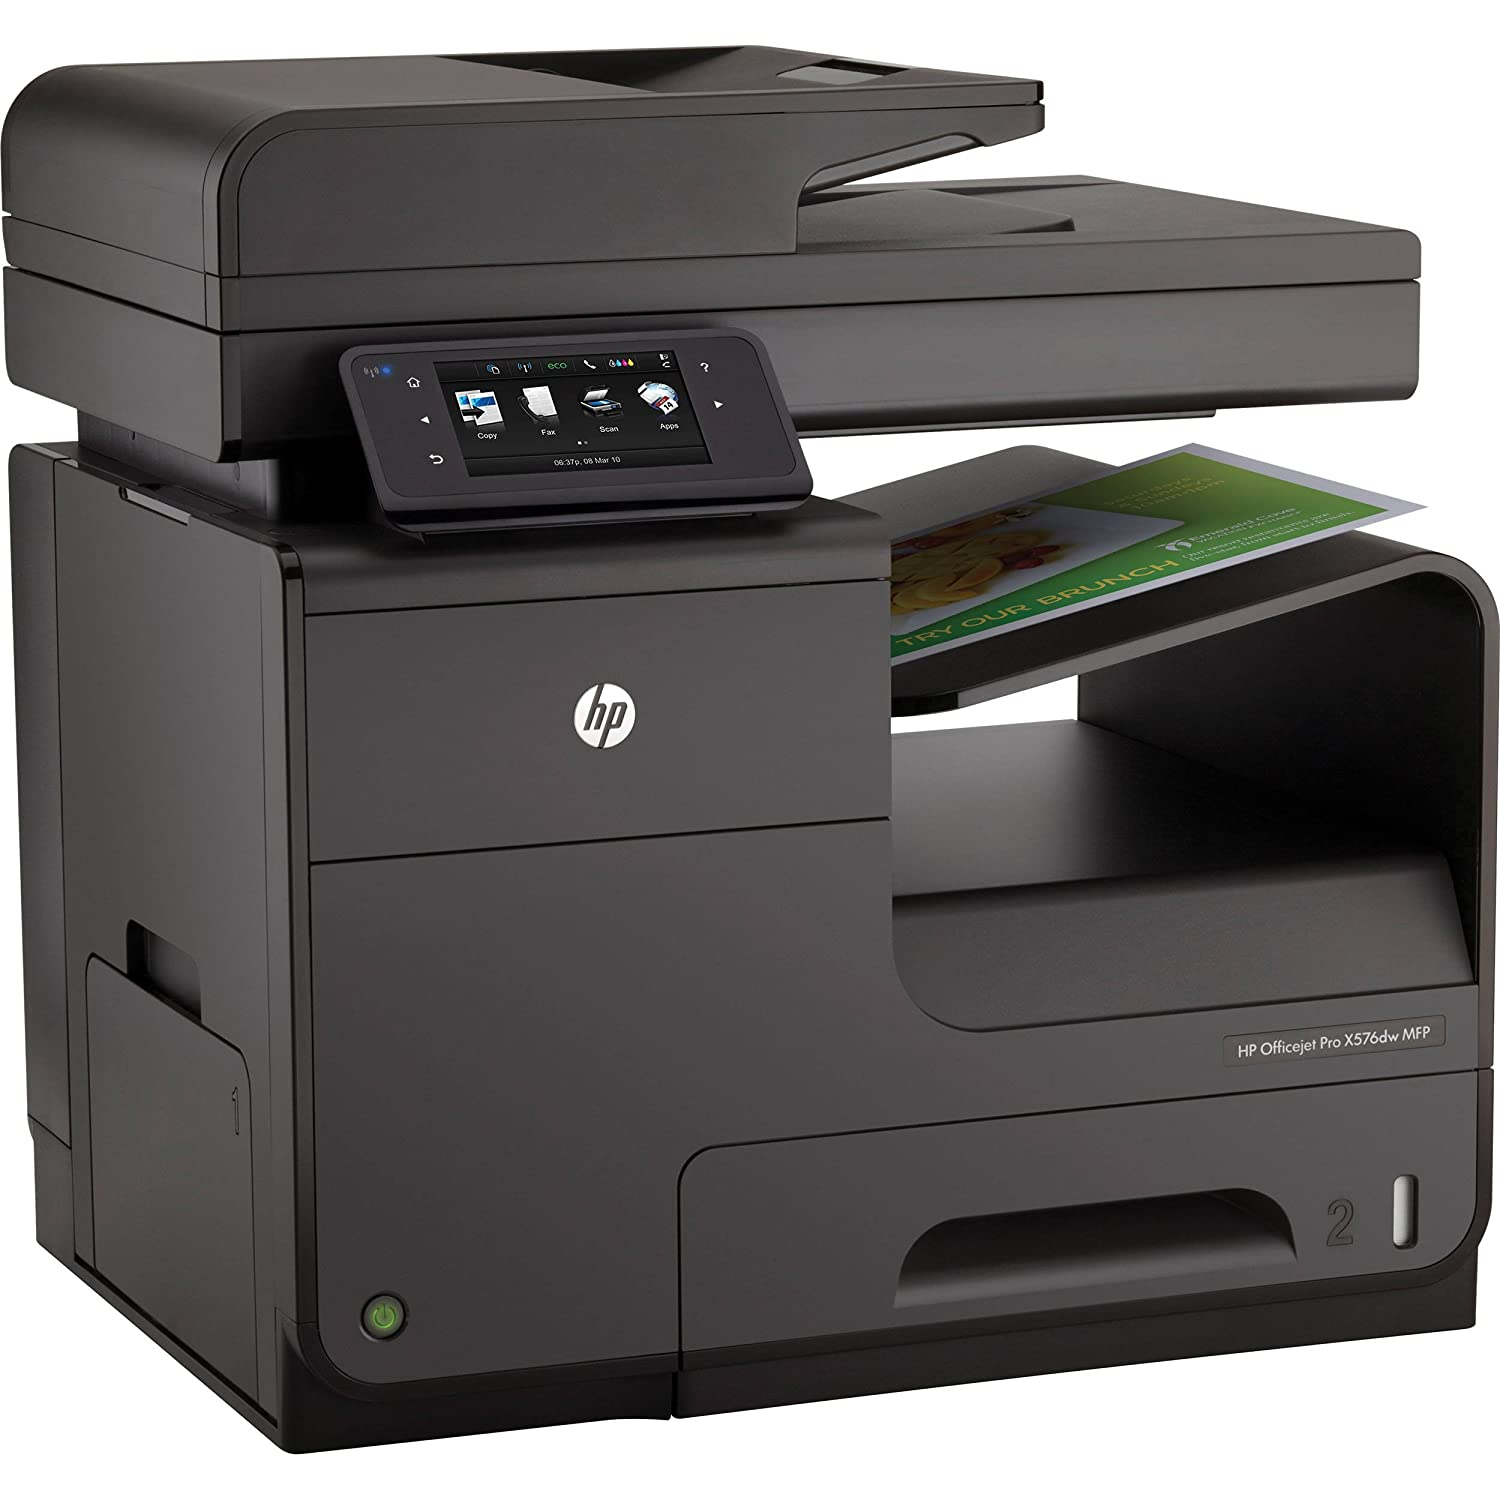 Hp Officejet Pro X576dw E All In One Tintenstrahl Mooi Printing Premium Sweater Top Garden Bunny M Computer Zubehr